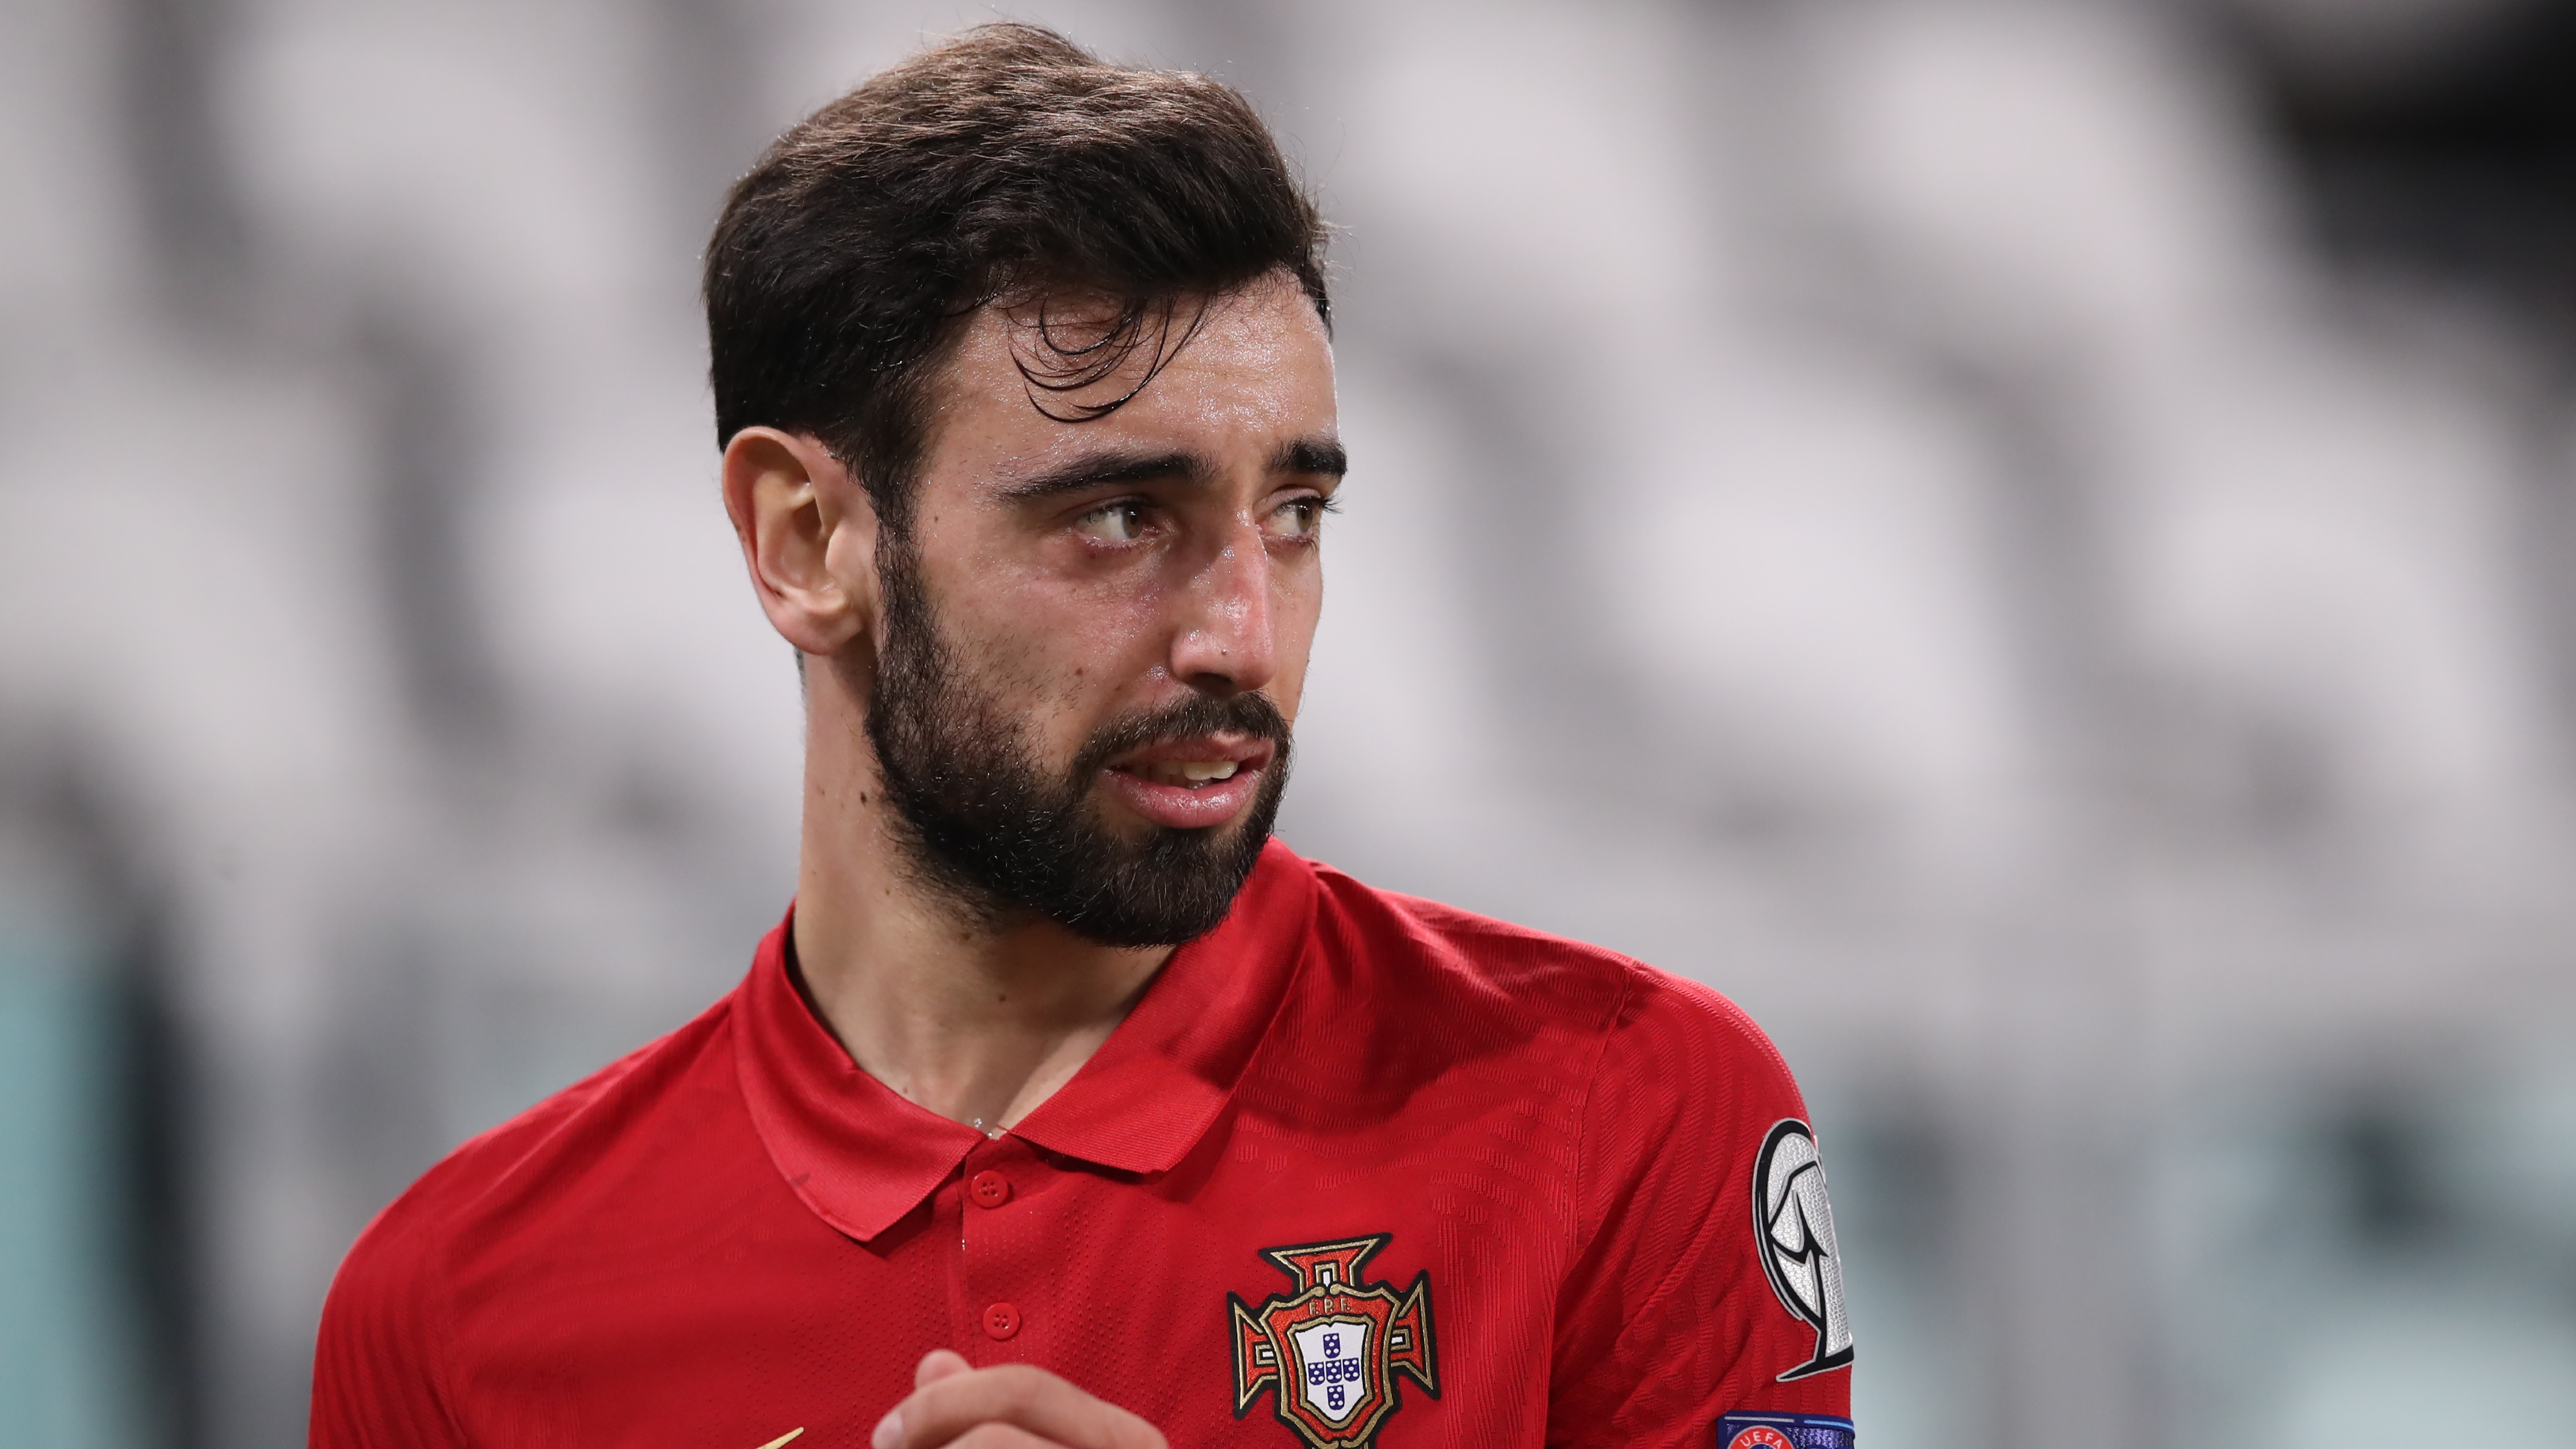 'Man Utd don't worry, he will arrive even better' – Bruno Fernandes trains with 'first love' Boavista